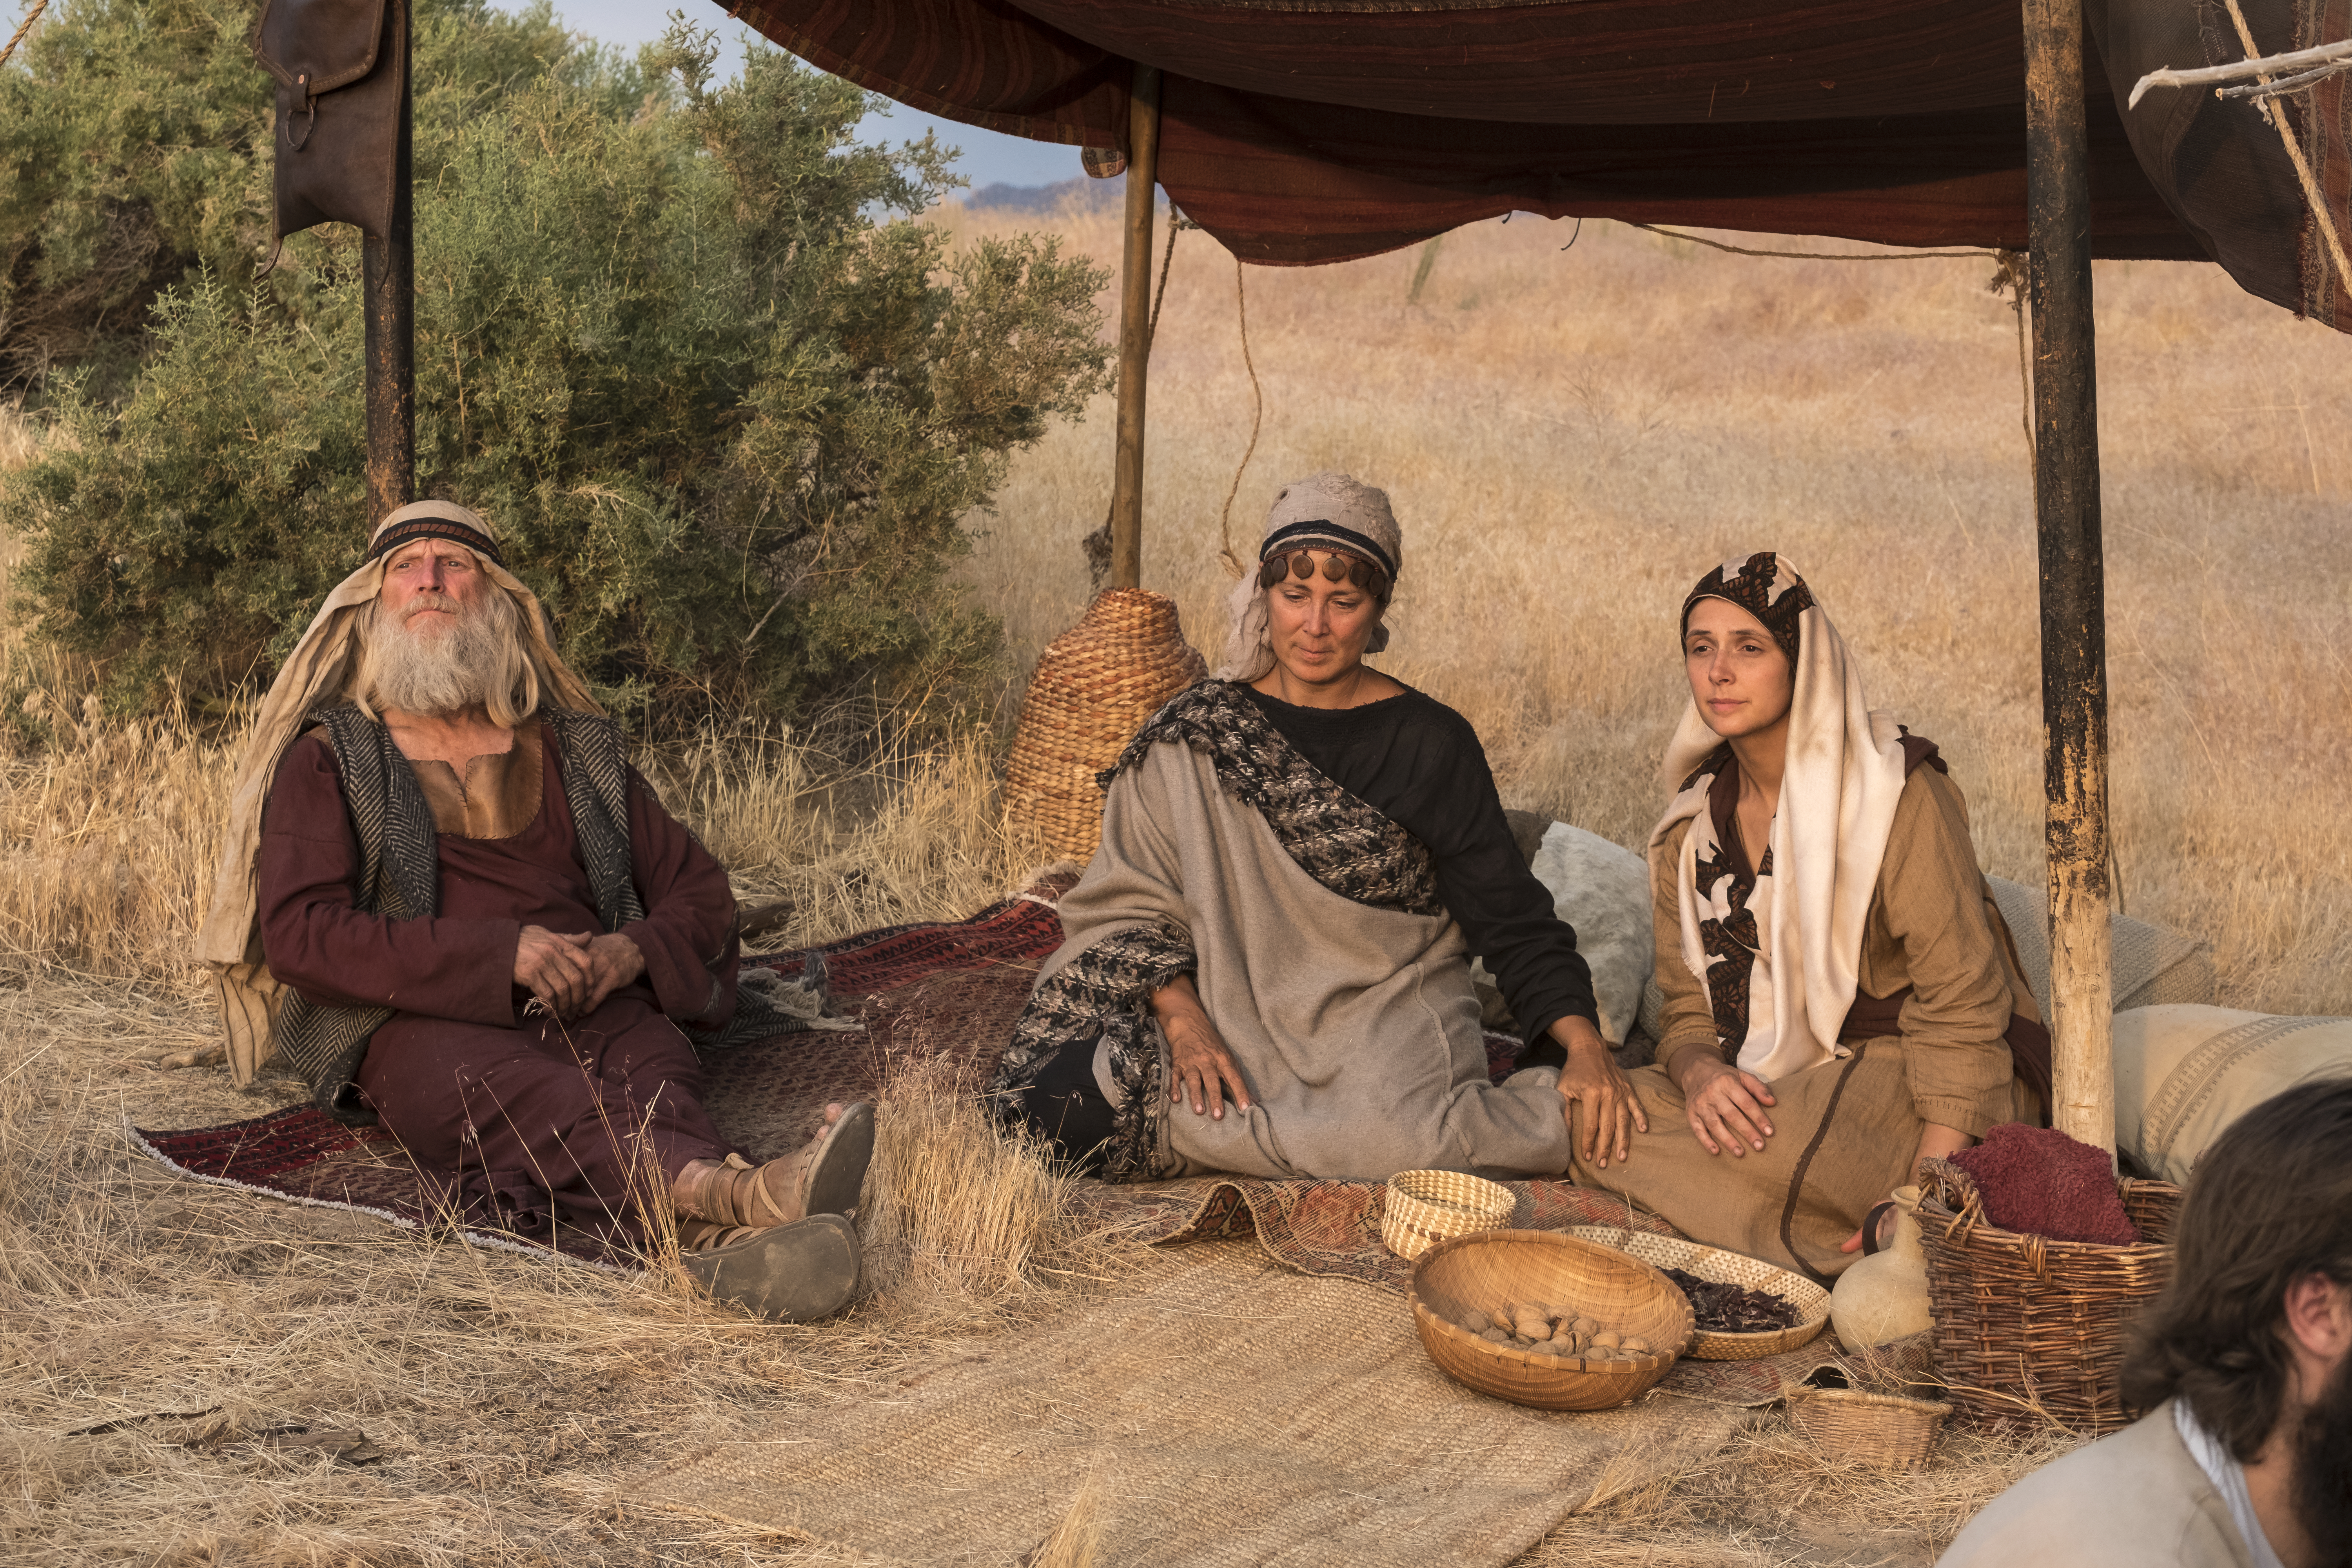 Ishmael, his wife, and his daughter sit in a tent in the wilderness.